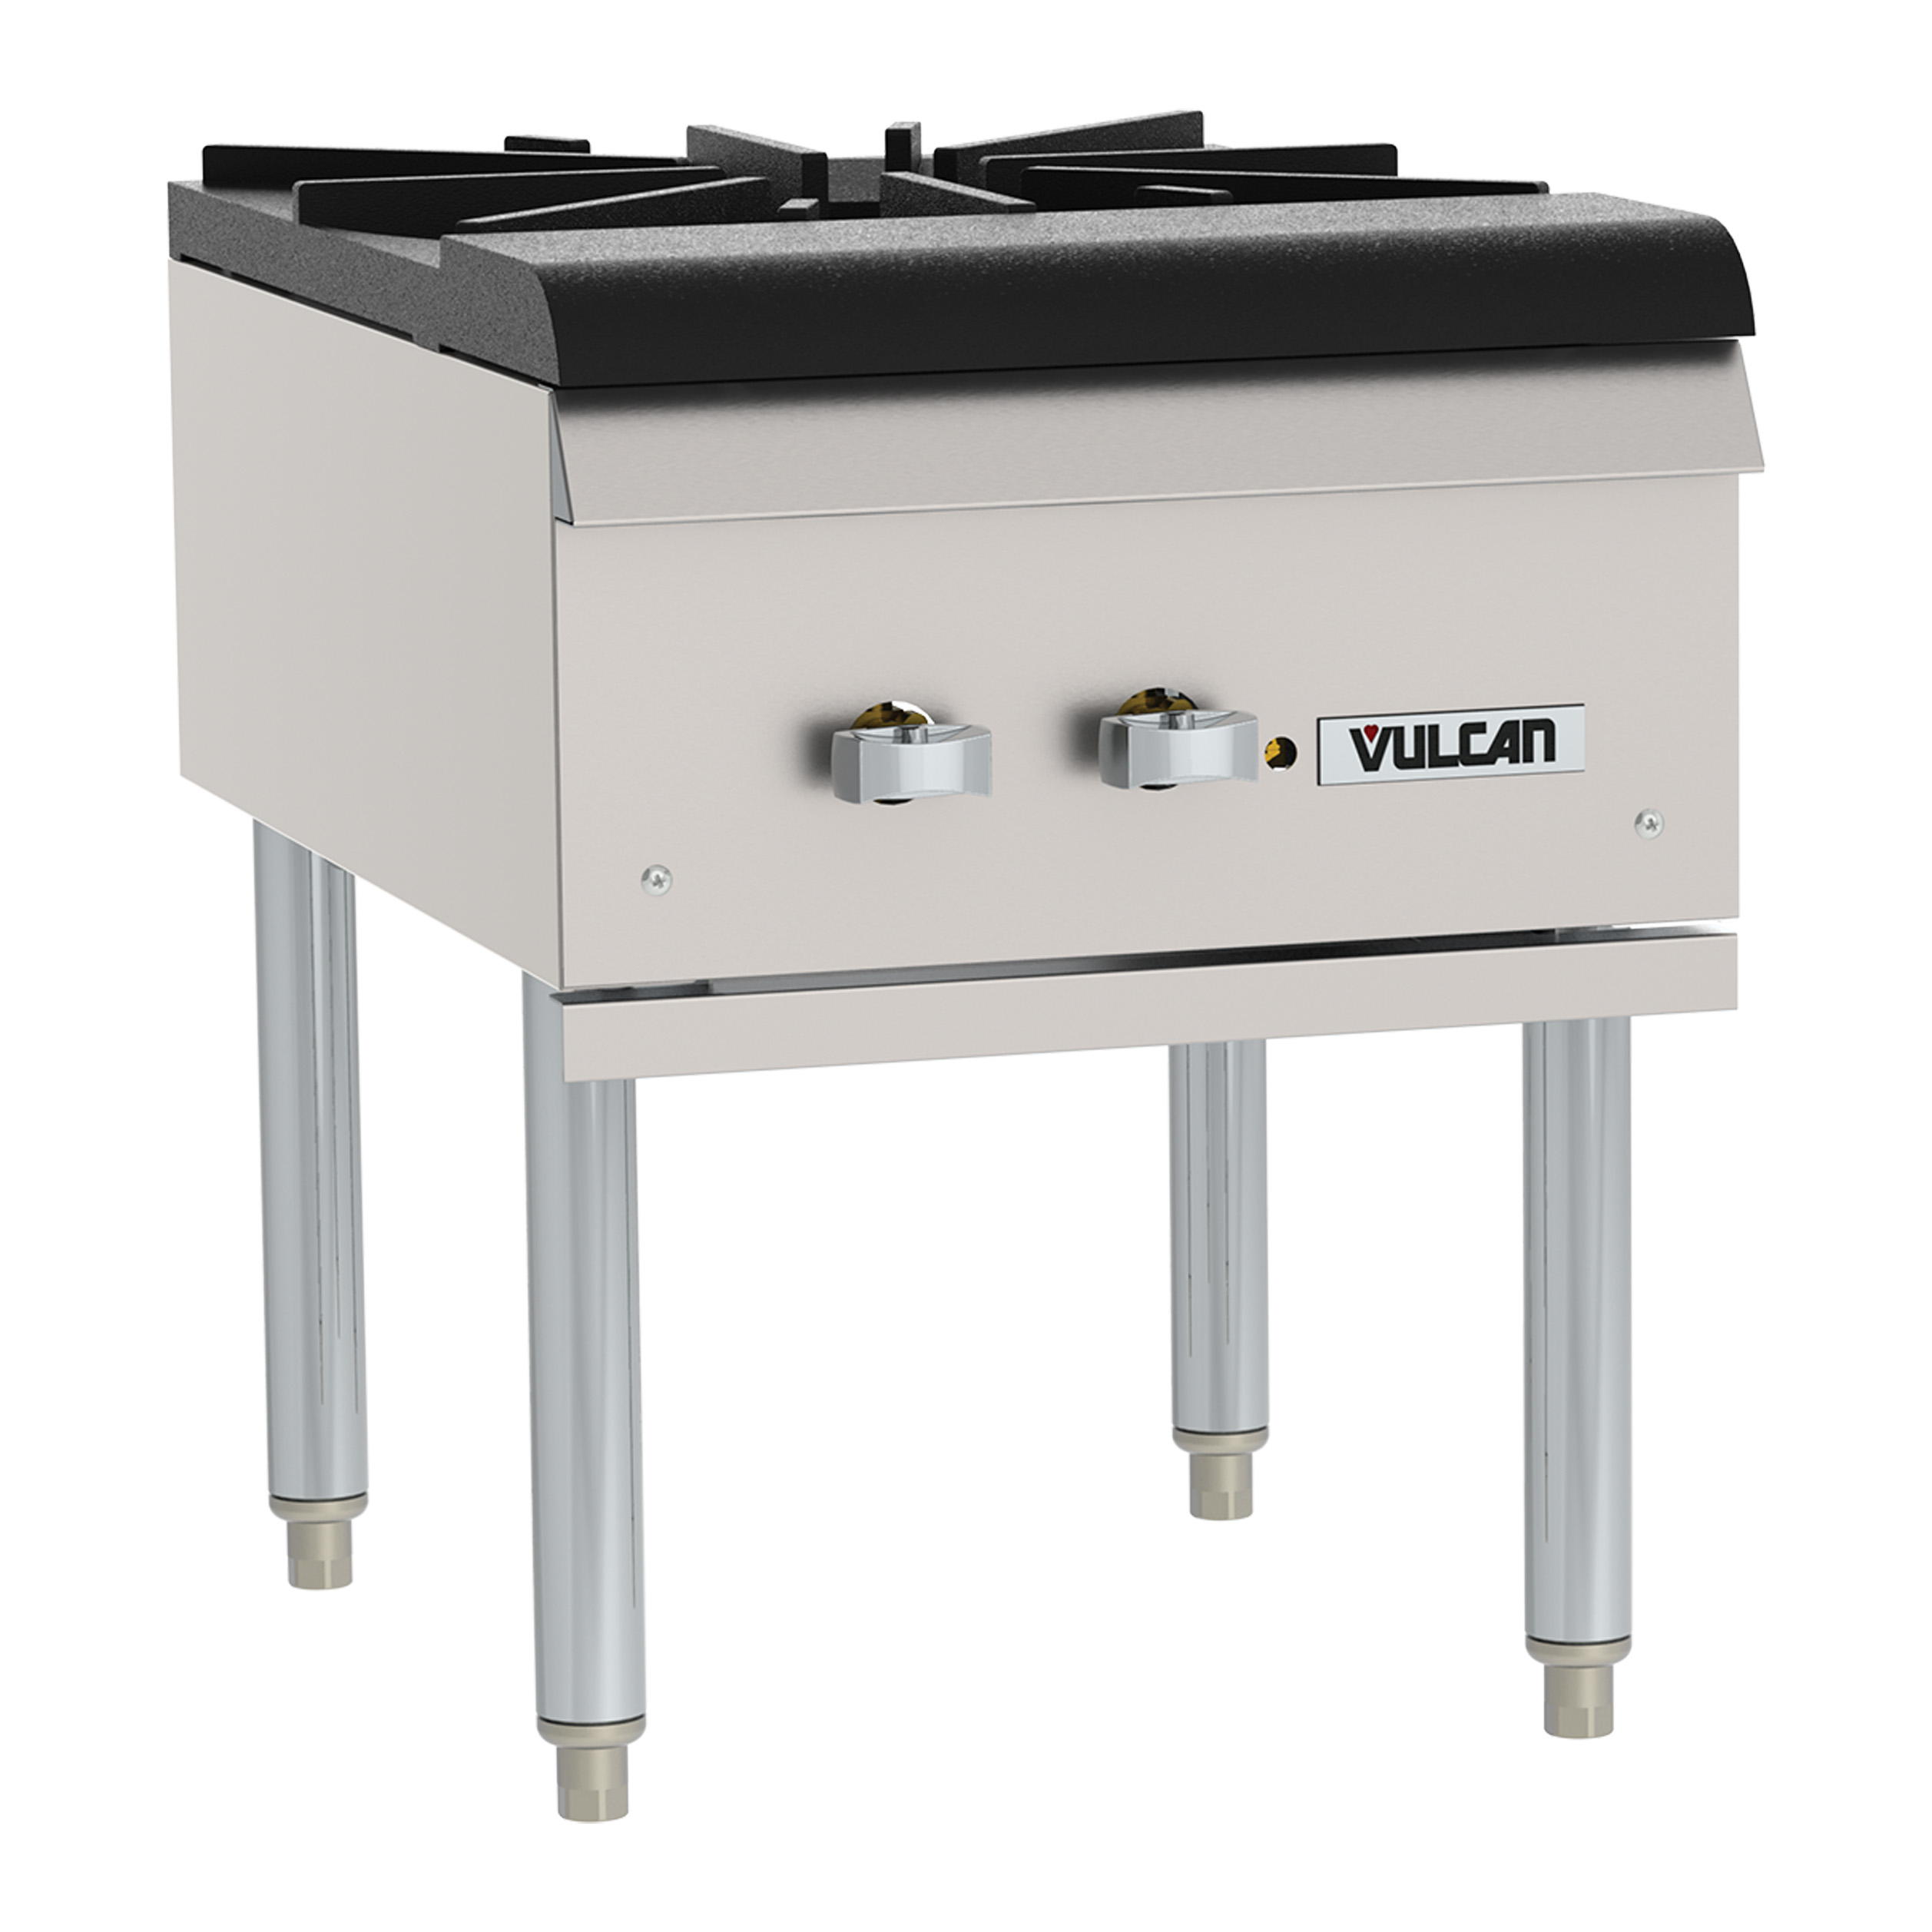 Vulcan VSP100 range, stock pot, gas